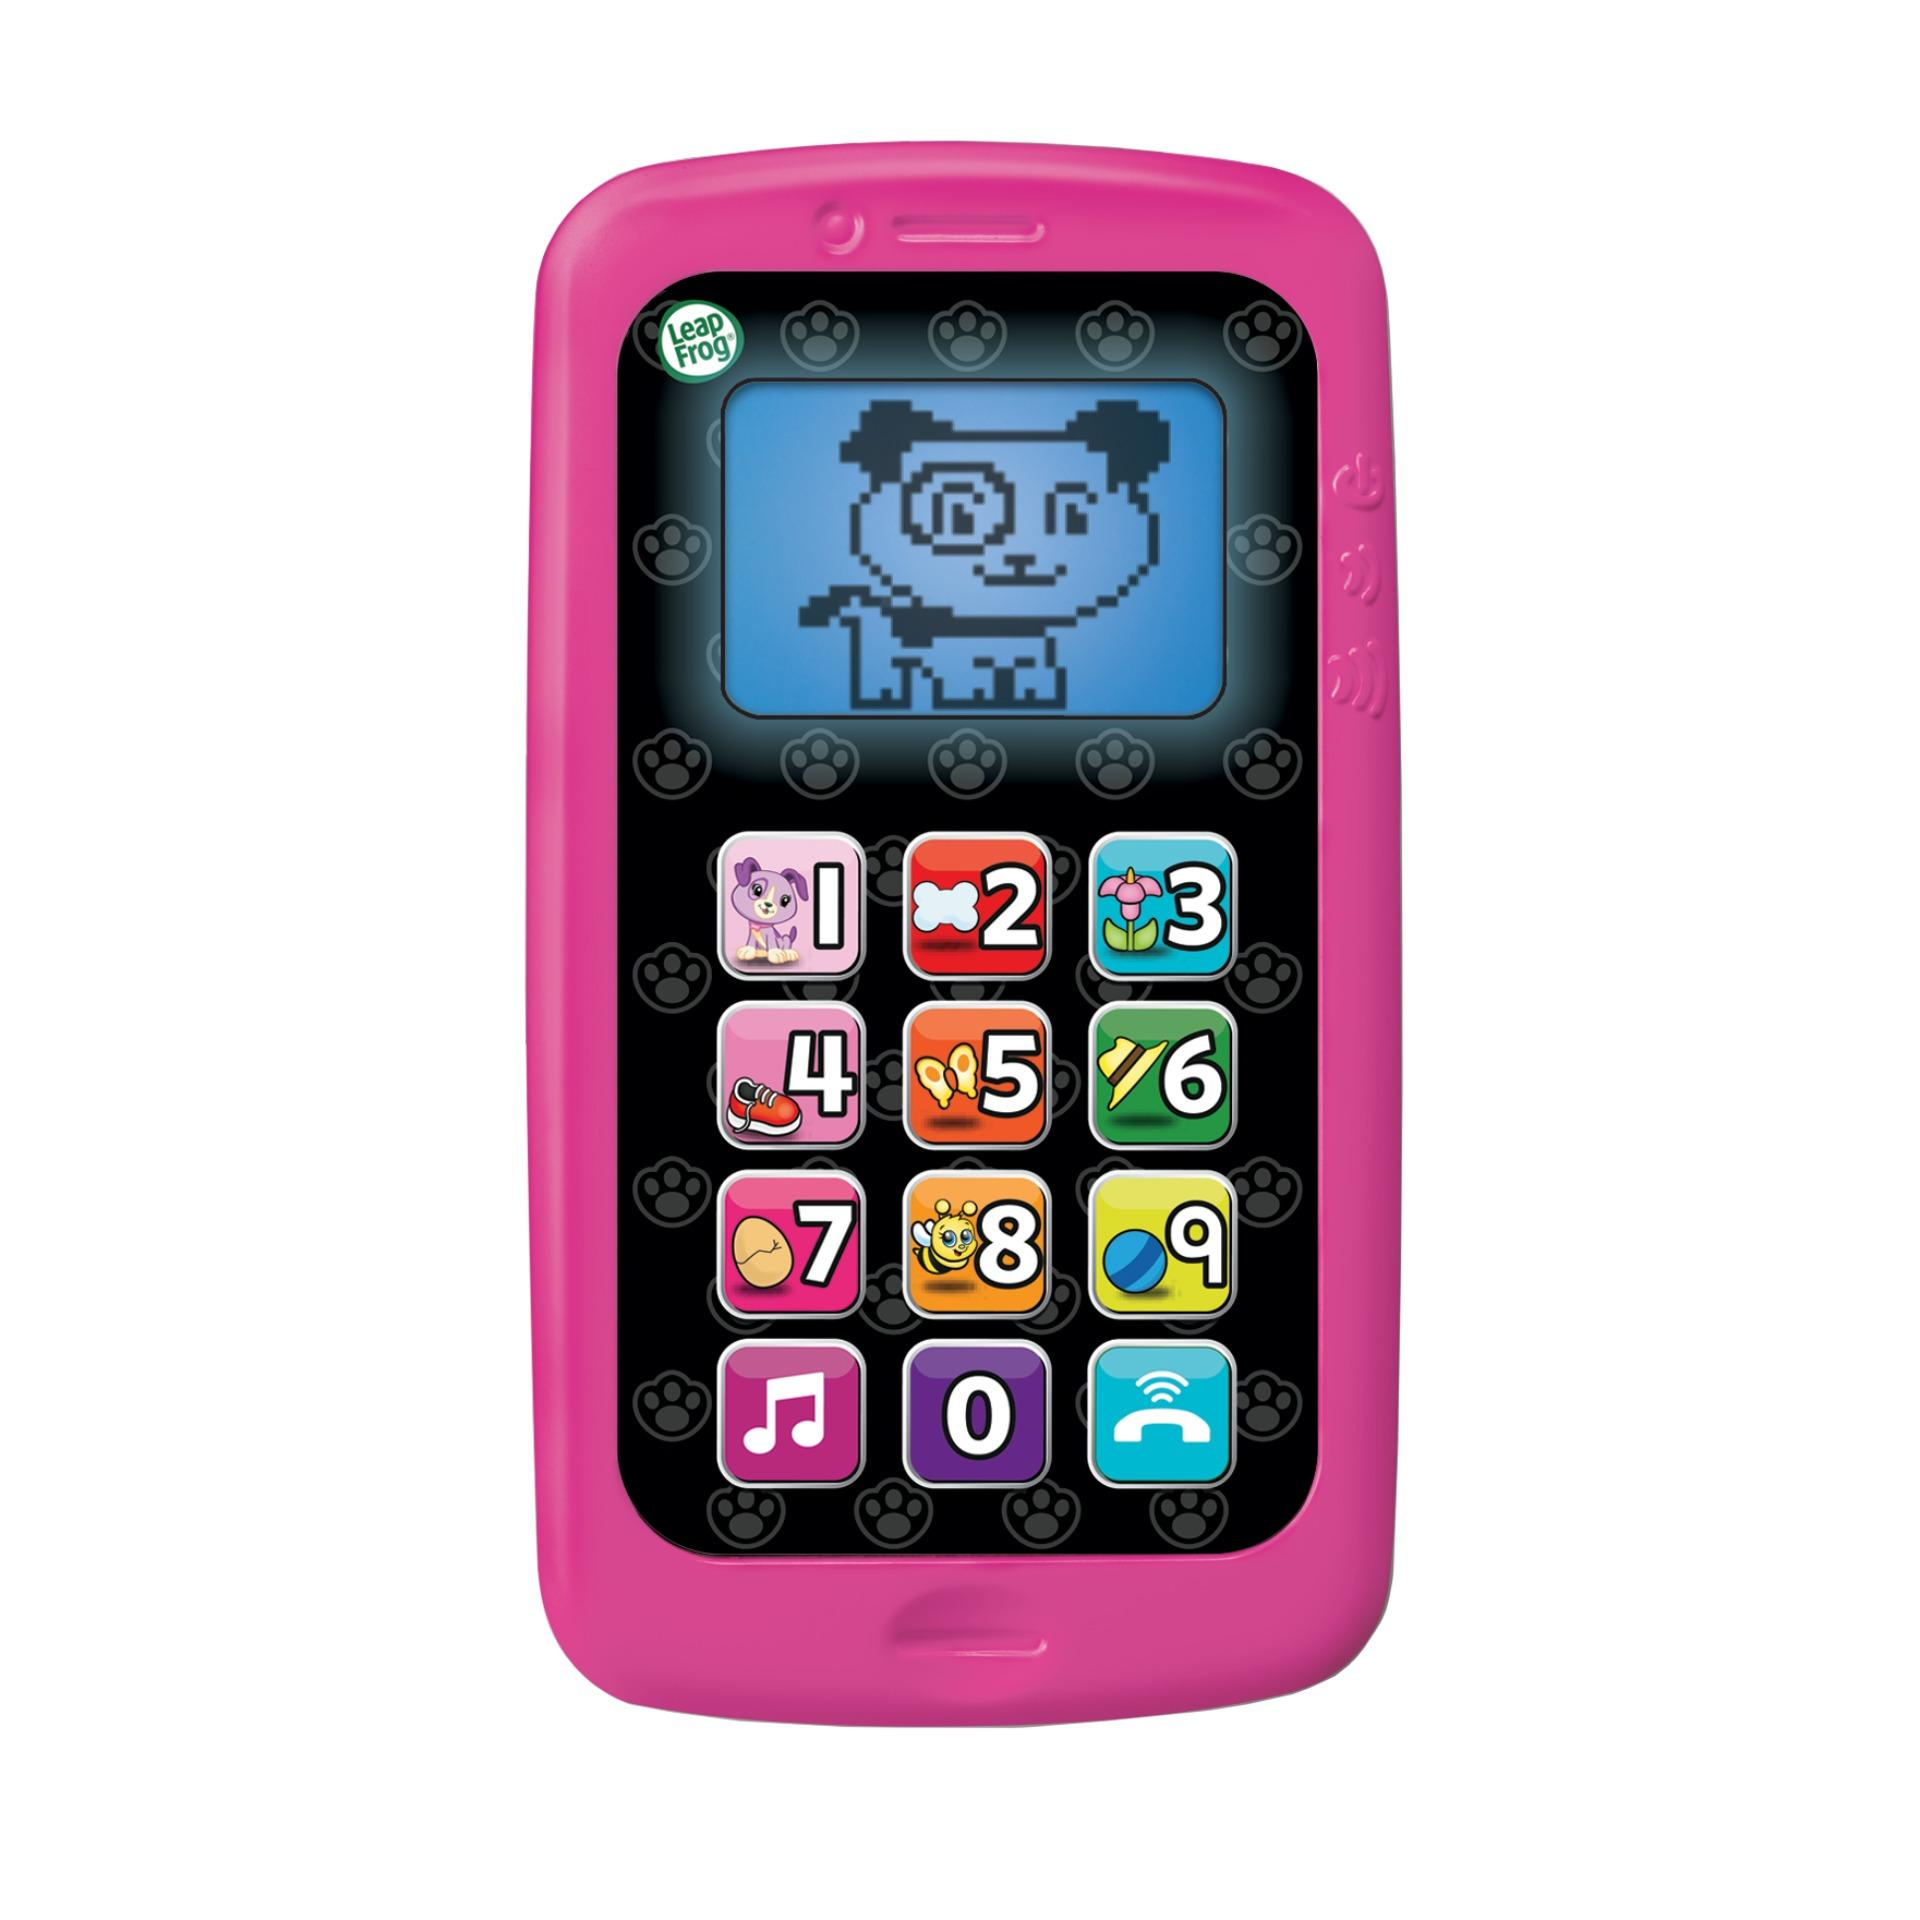 Sale Leapfrog Chat And Count Phone Violet